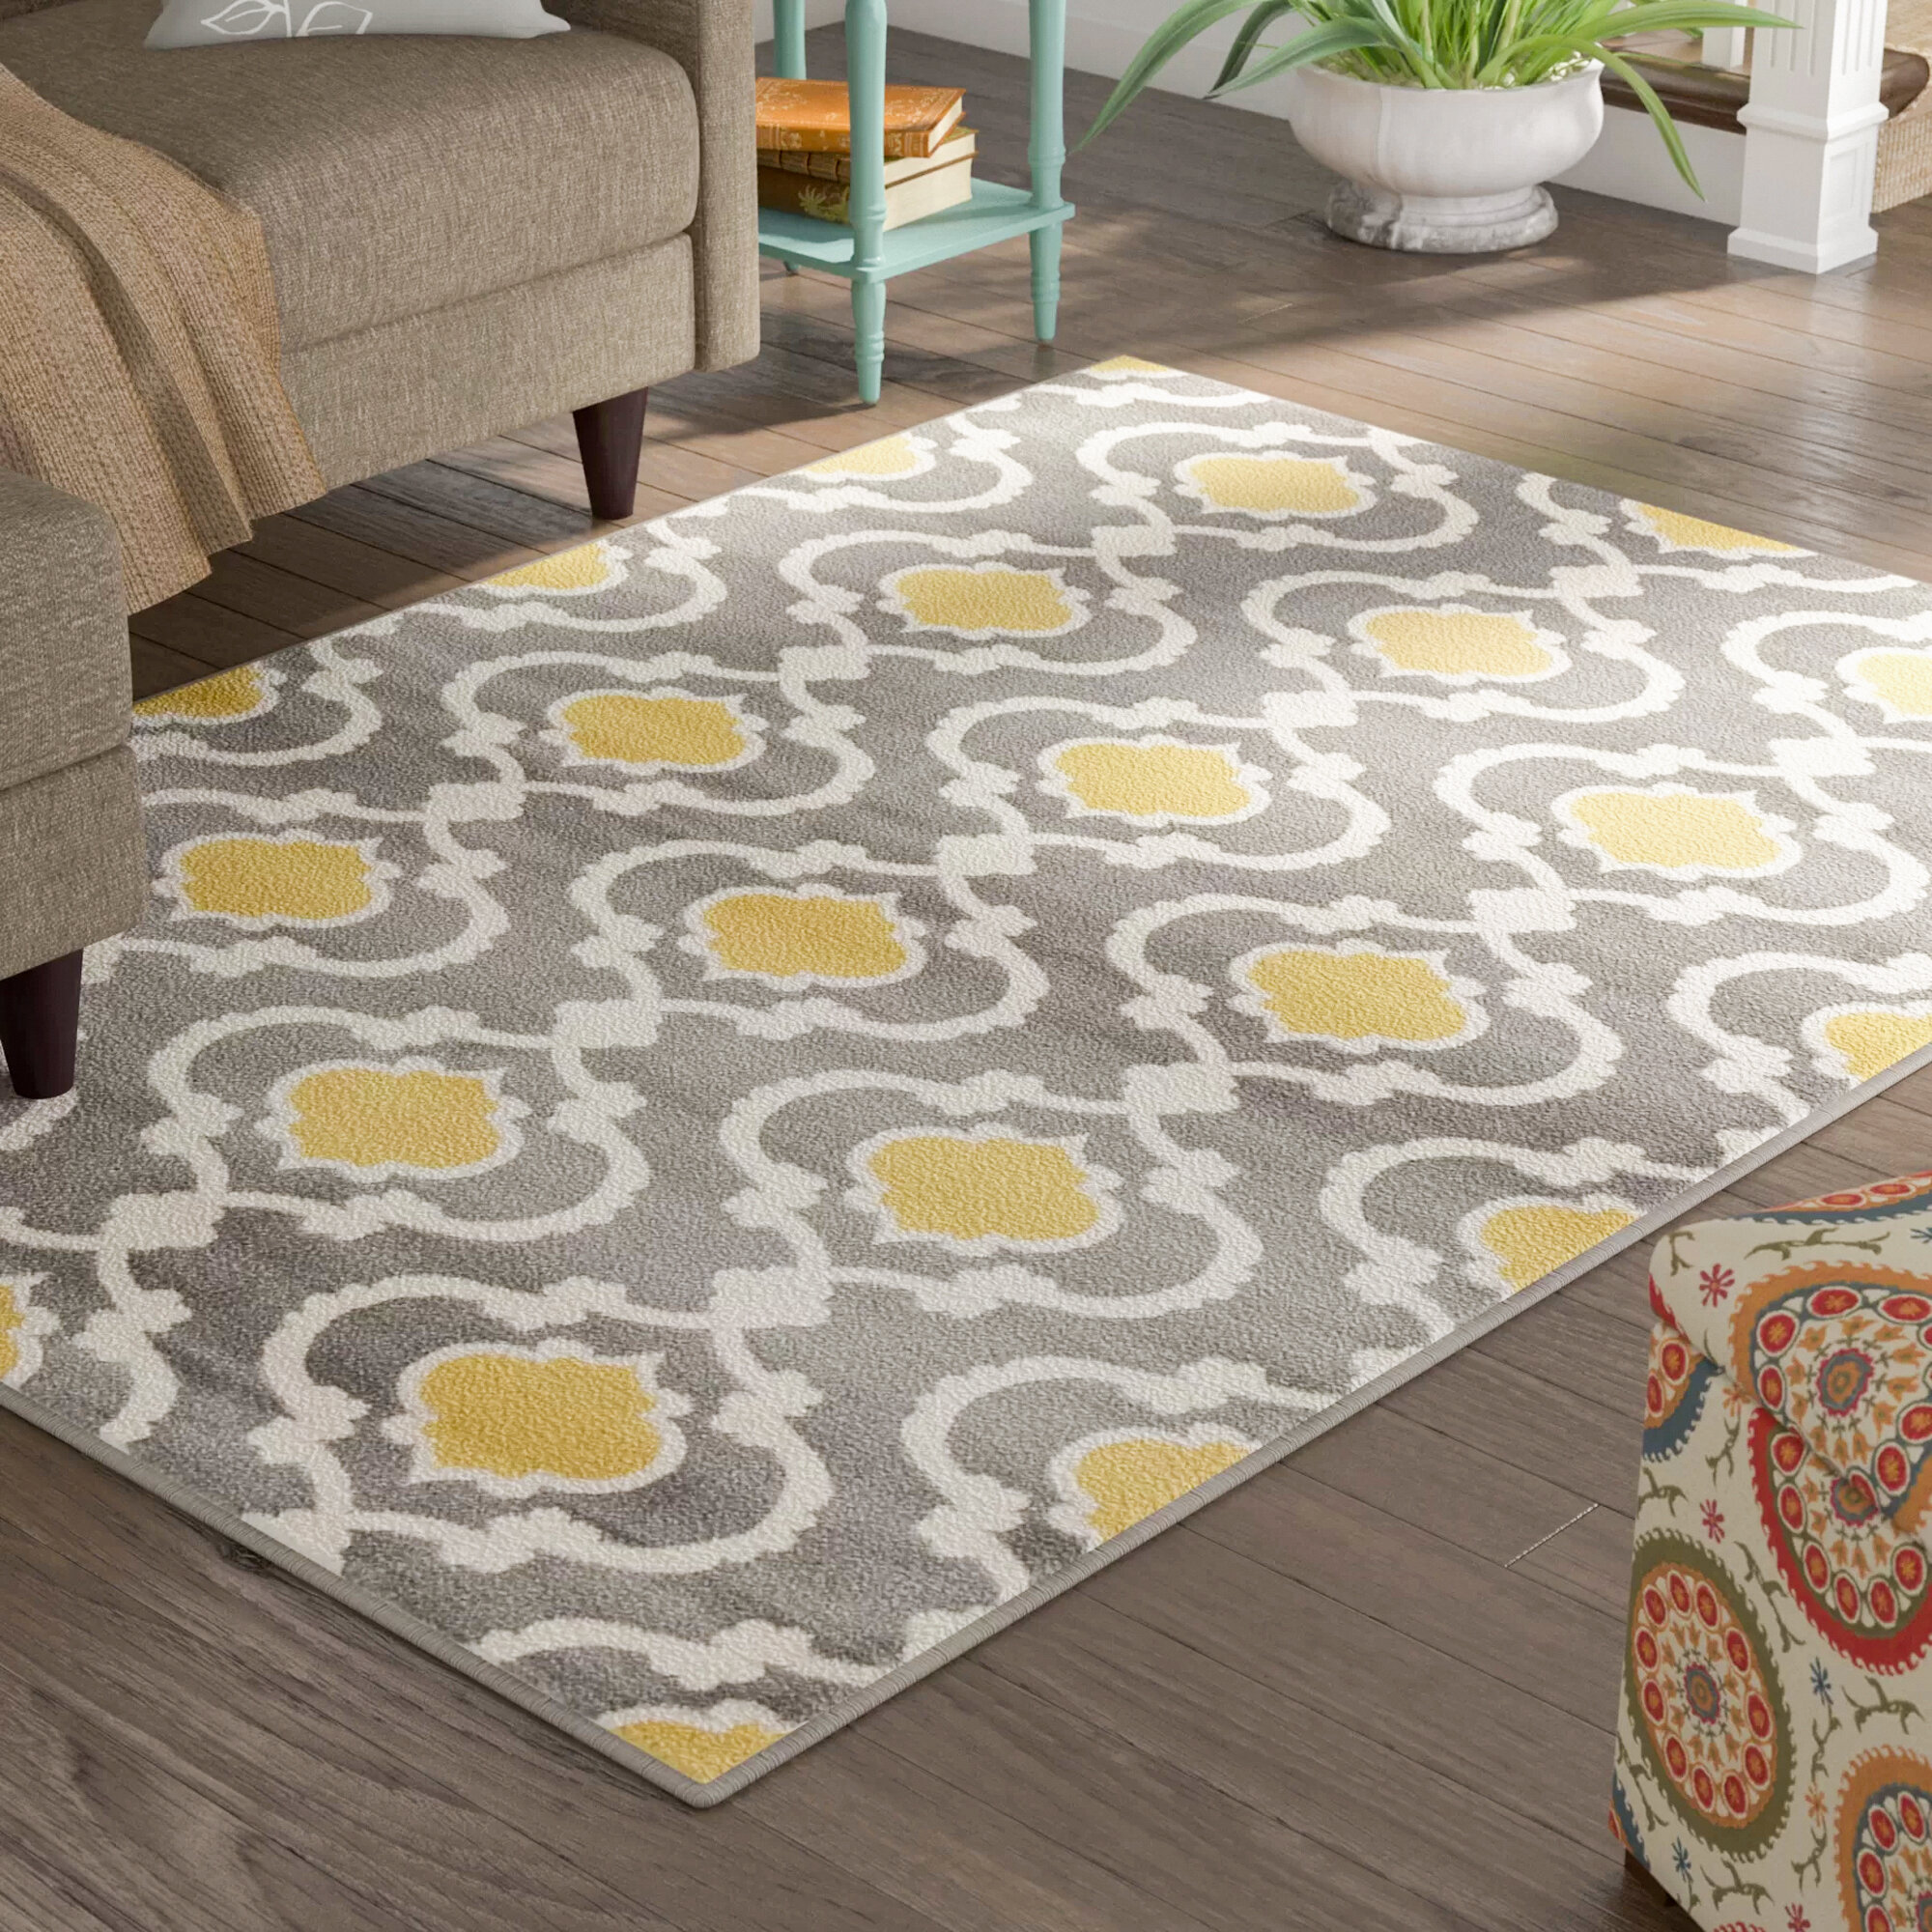 10 X 14 Yellow Gold Area Rugs You Ll Love In 2021 Wayfair